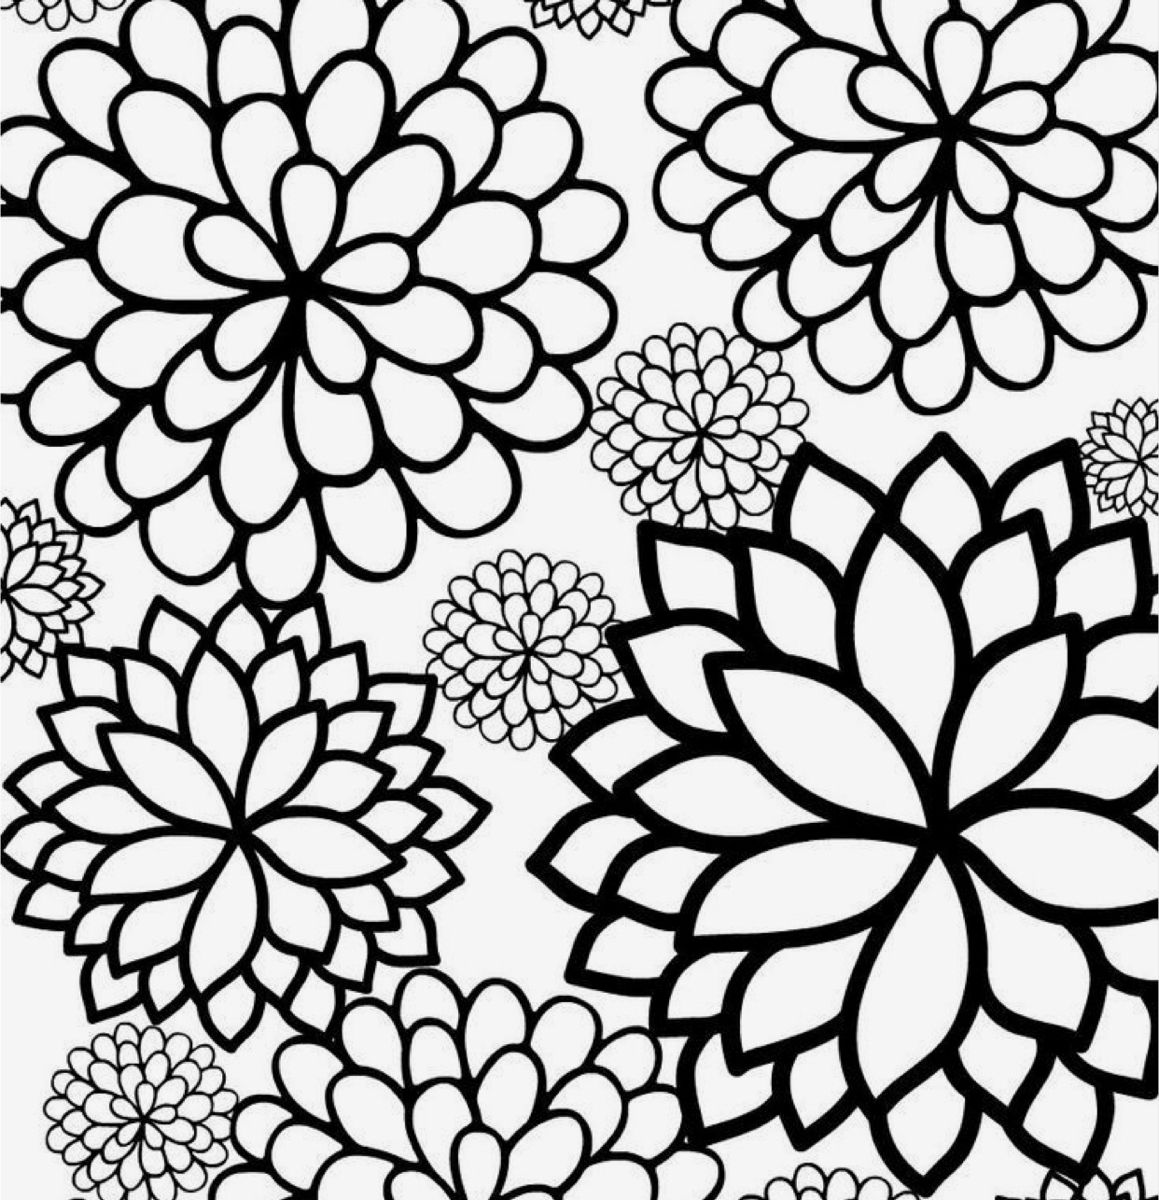 Free Printable Coloring Pages Flowers Awesome Flowerpot Coloring Page Flower Coloring Pages Printable Flower Coloring Pages Flower Drawing